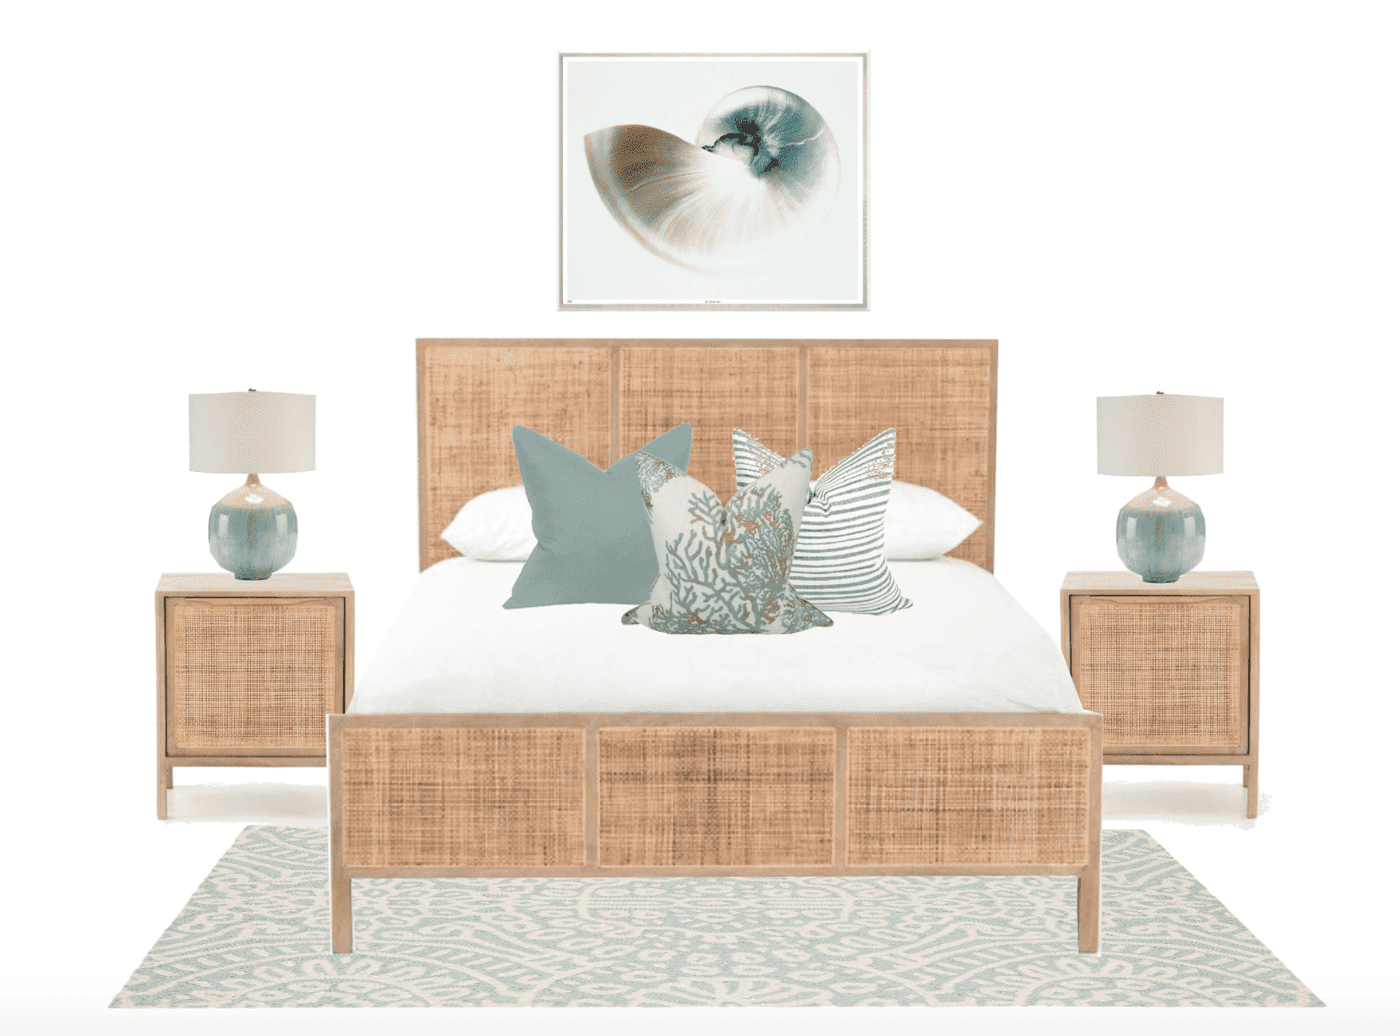 Master Bedroom Furniture Package - Aqua – Our Boat House